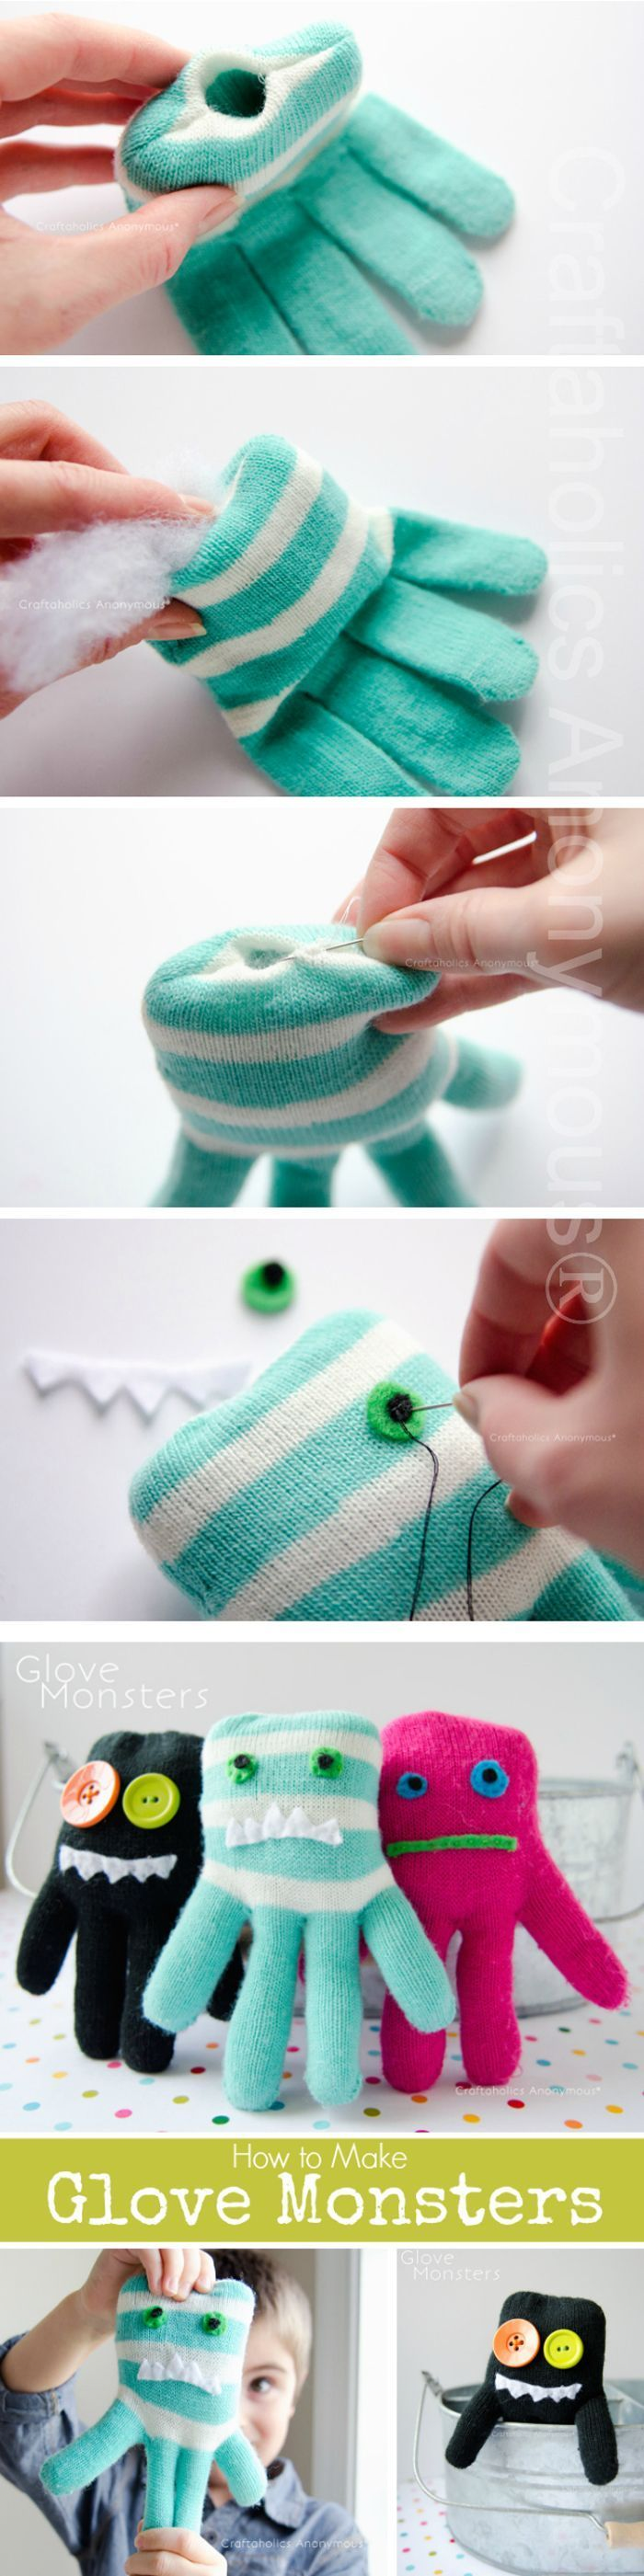 Glove Monsters - looks easy enough for even someone with no sewing skills, I would make a rice bag version.